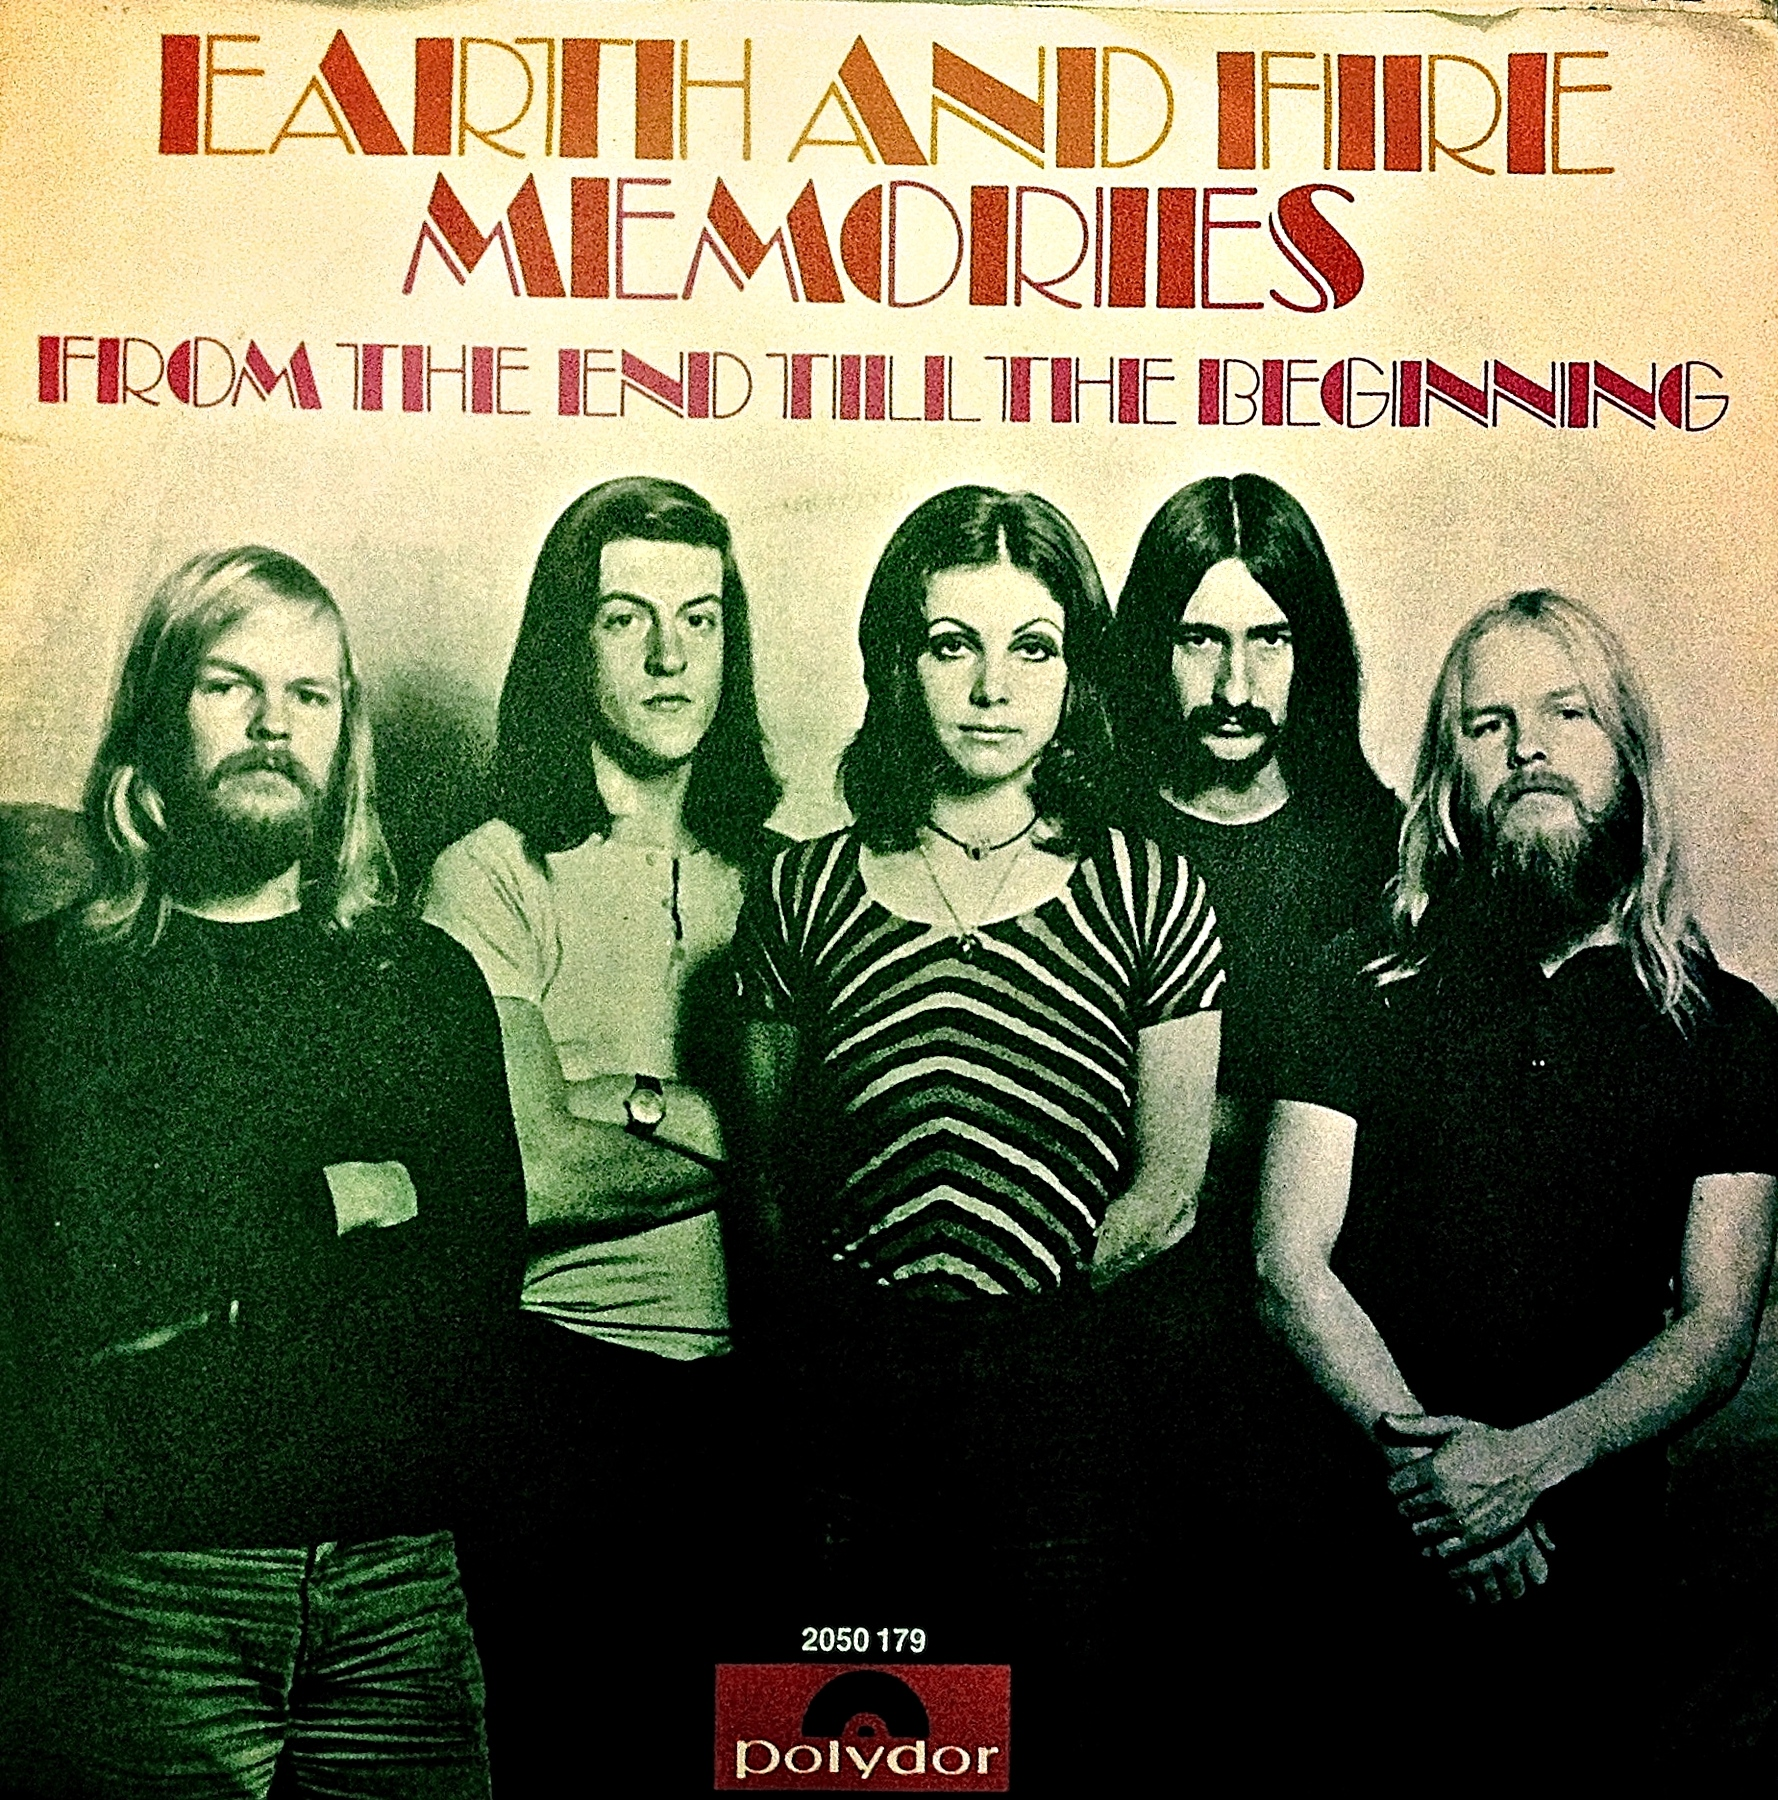 Earth And Fire - From The End Till The Begin..